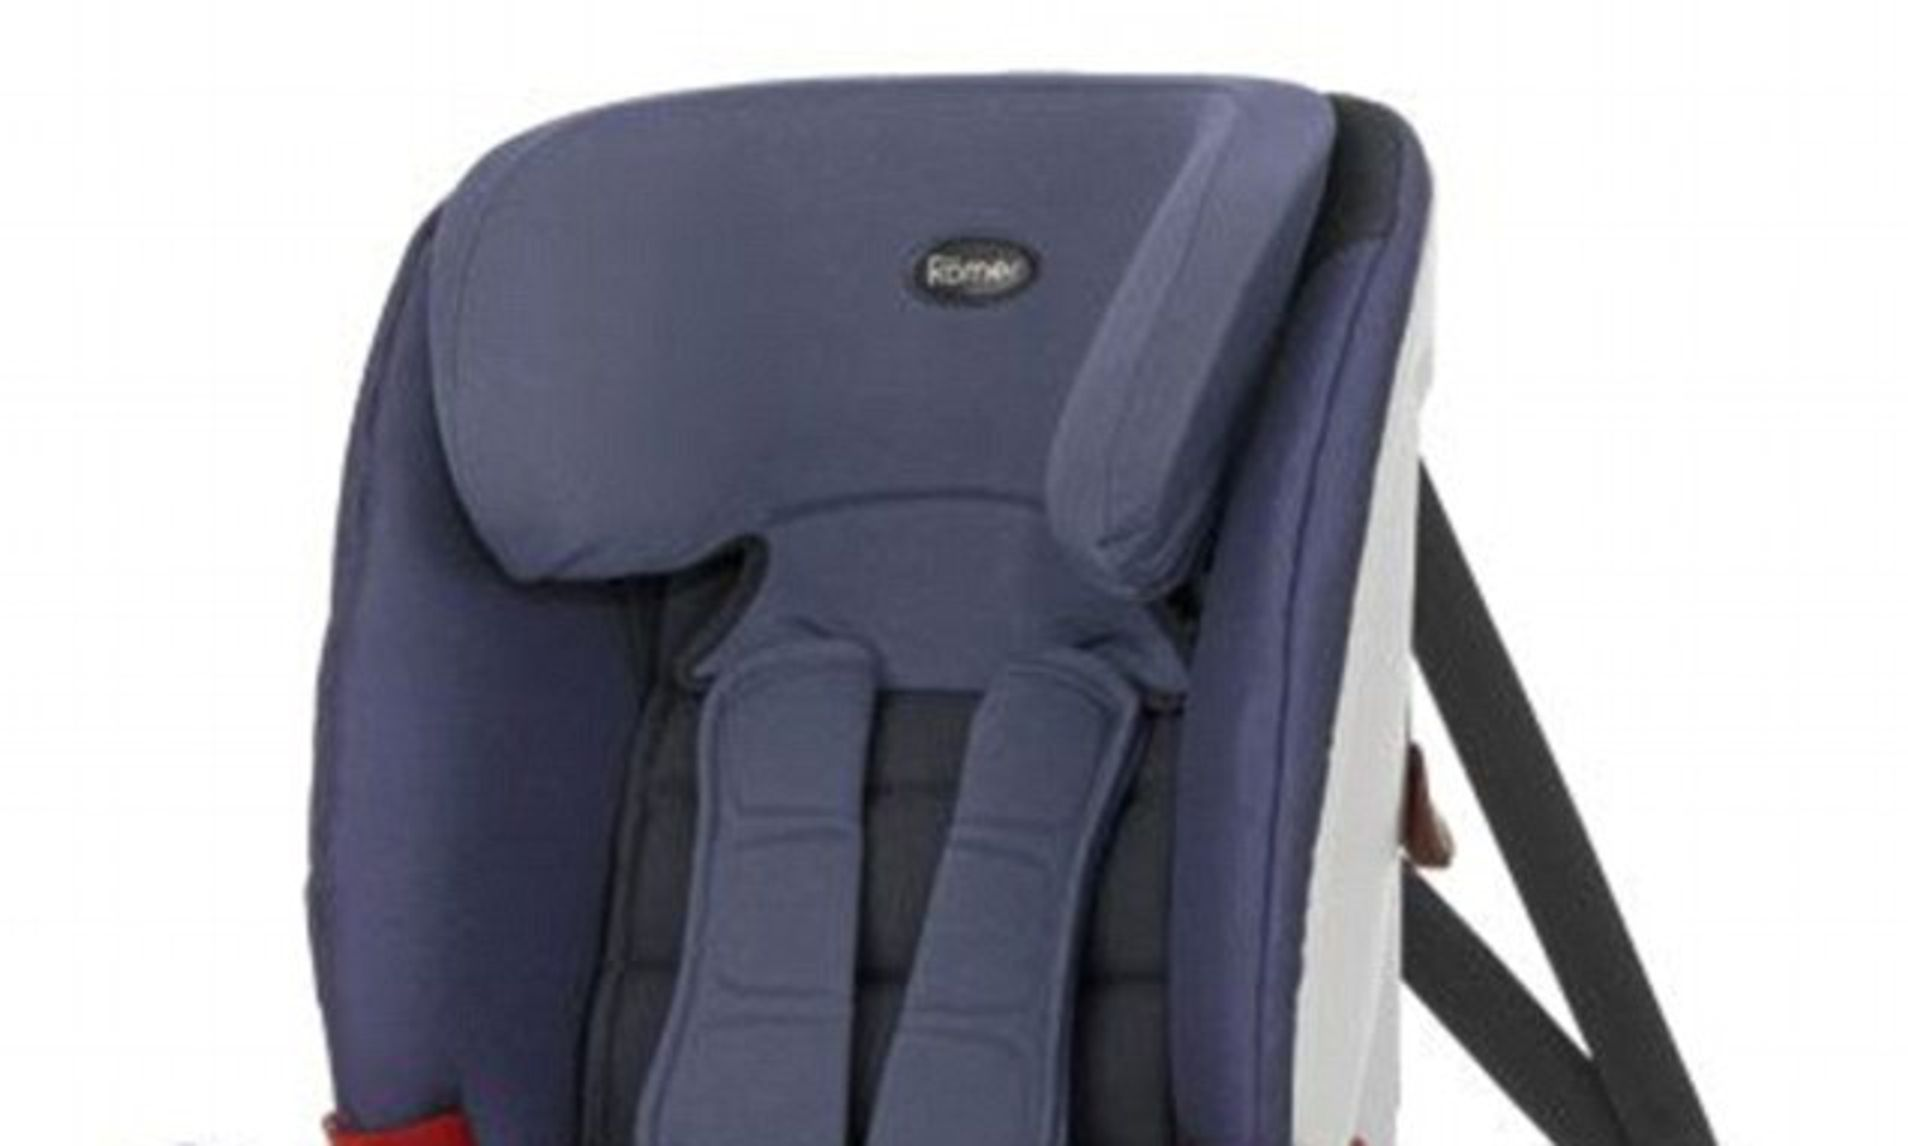 Britax Duo Plus John Lewis Britax Withdraws Latest Child Car Seat After Tests Find